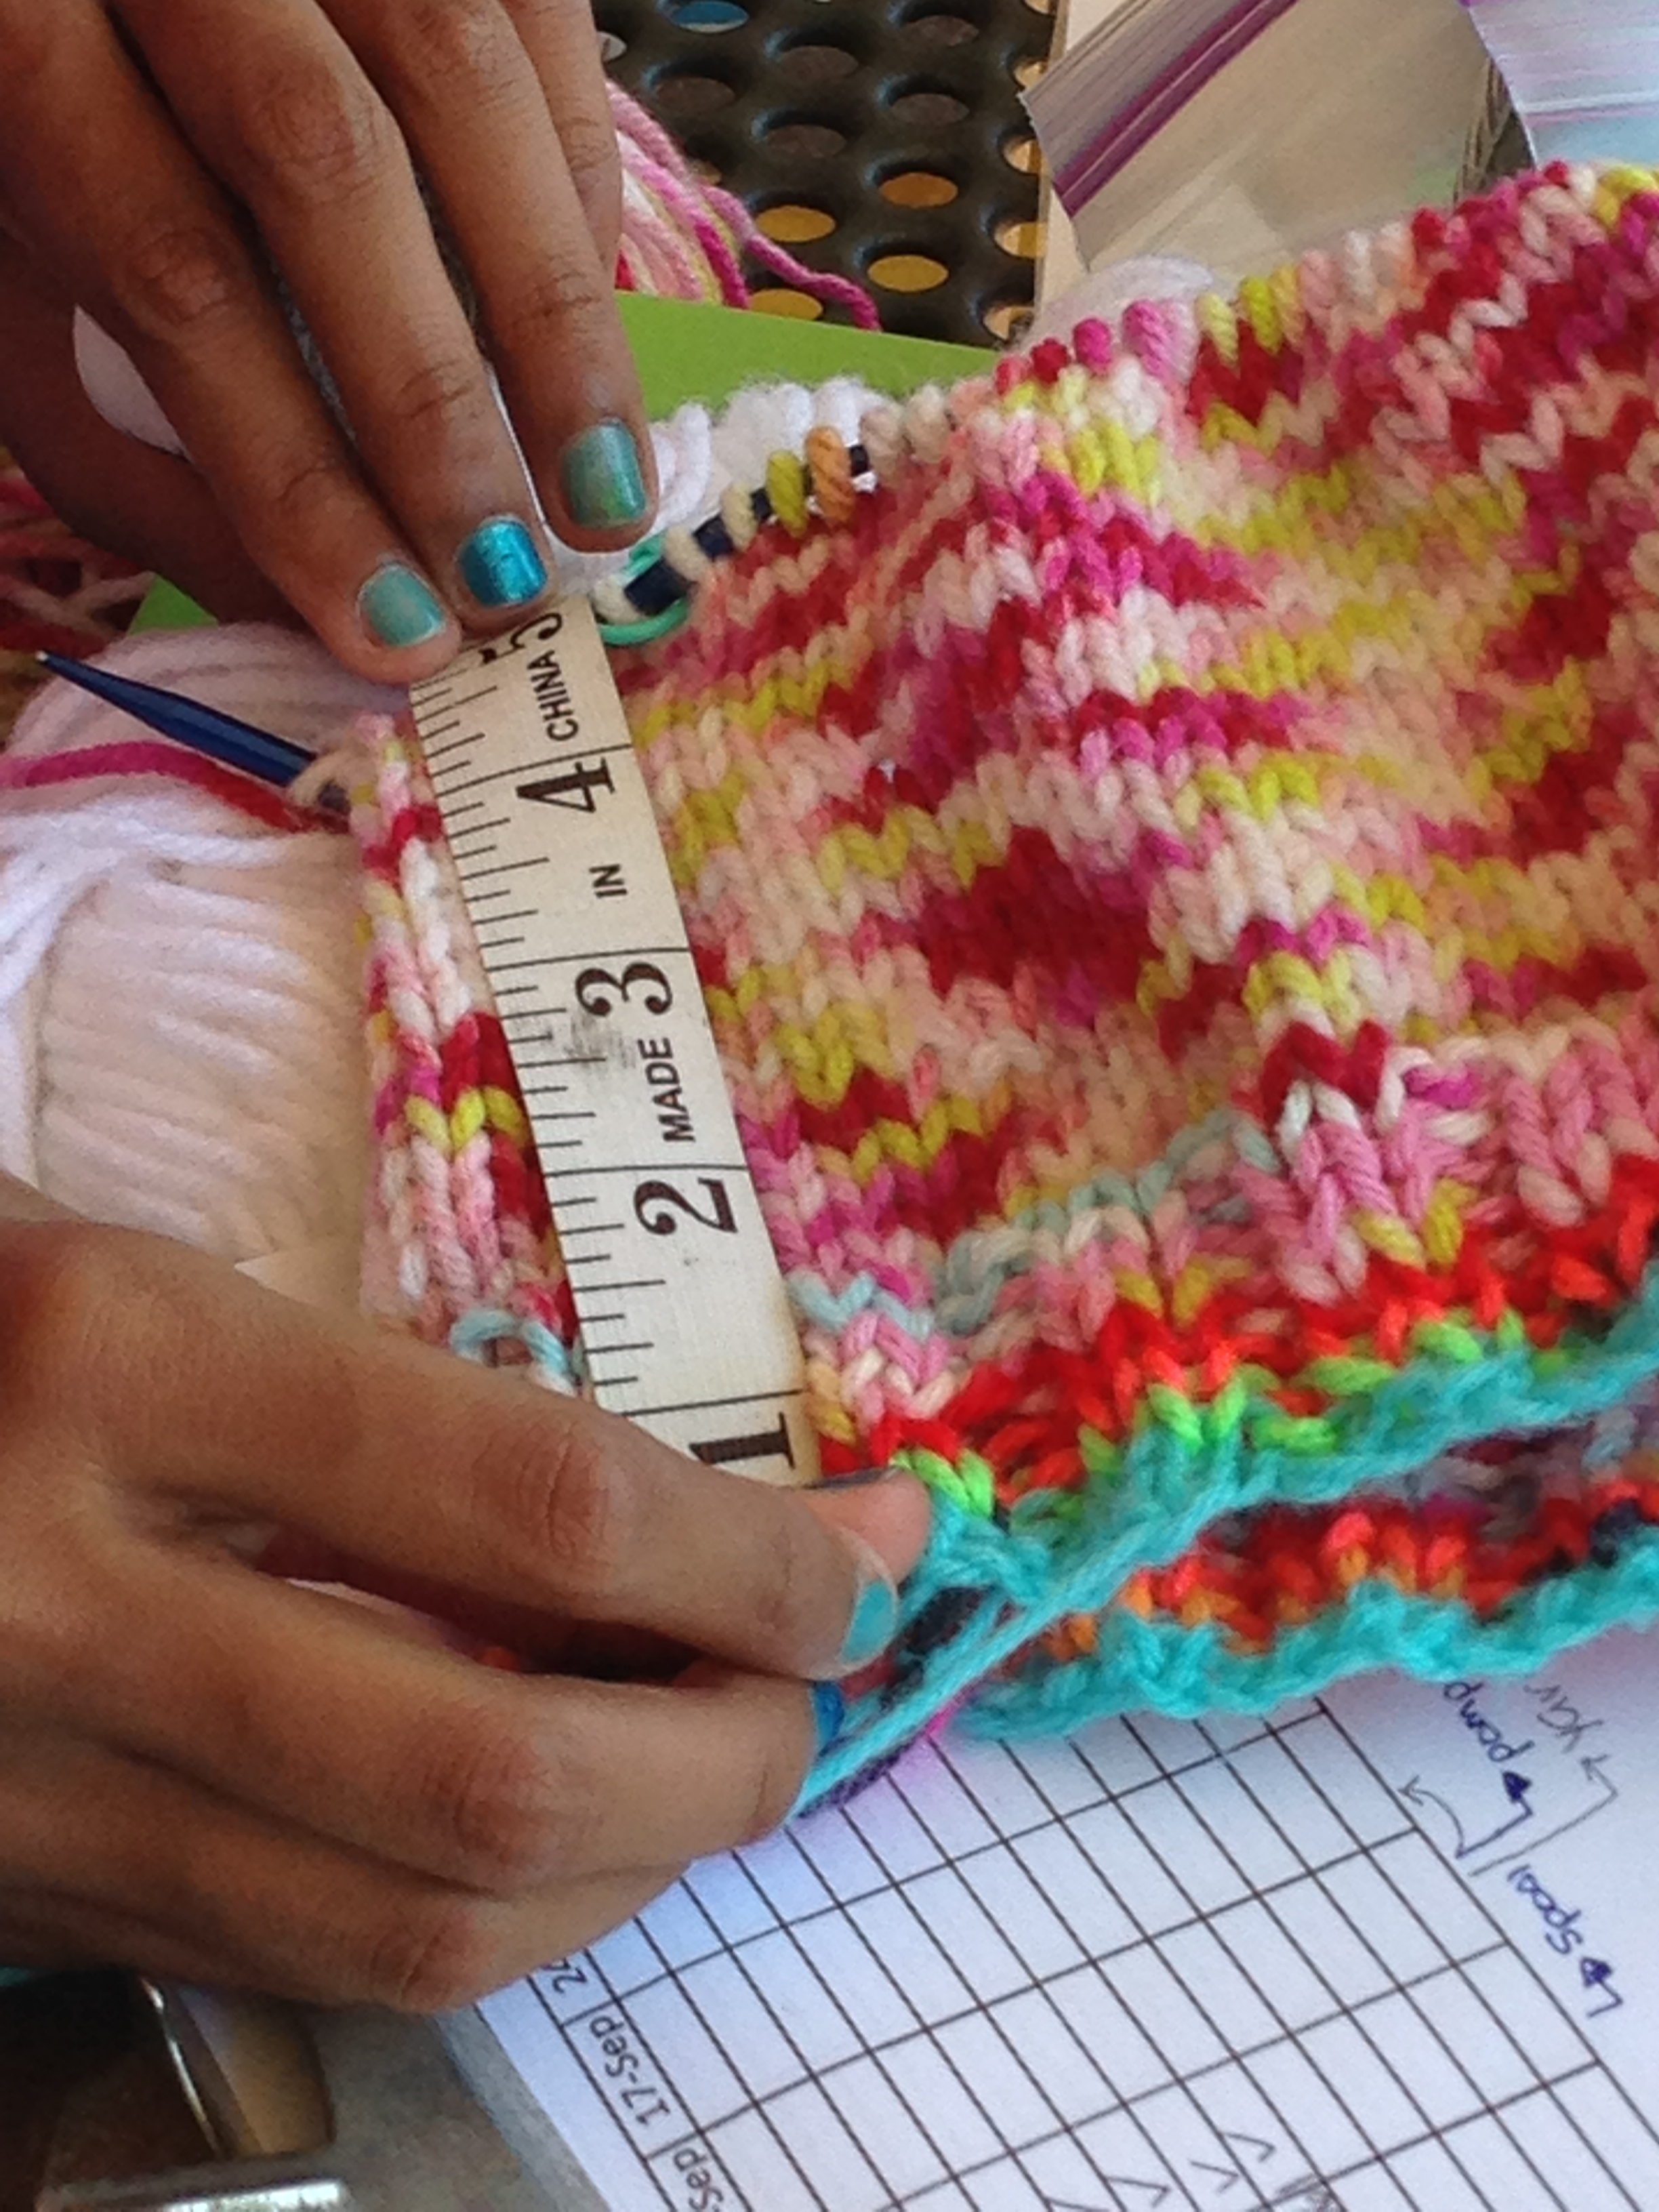 A 4th grader measuring her hat that is being knit in the round on circular needles.